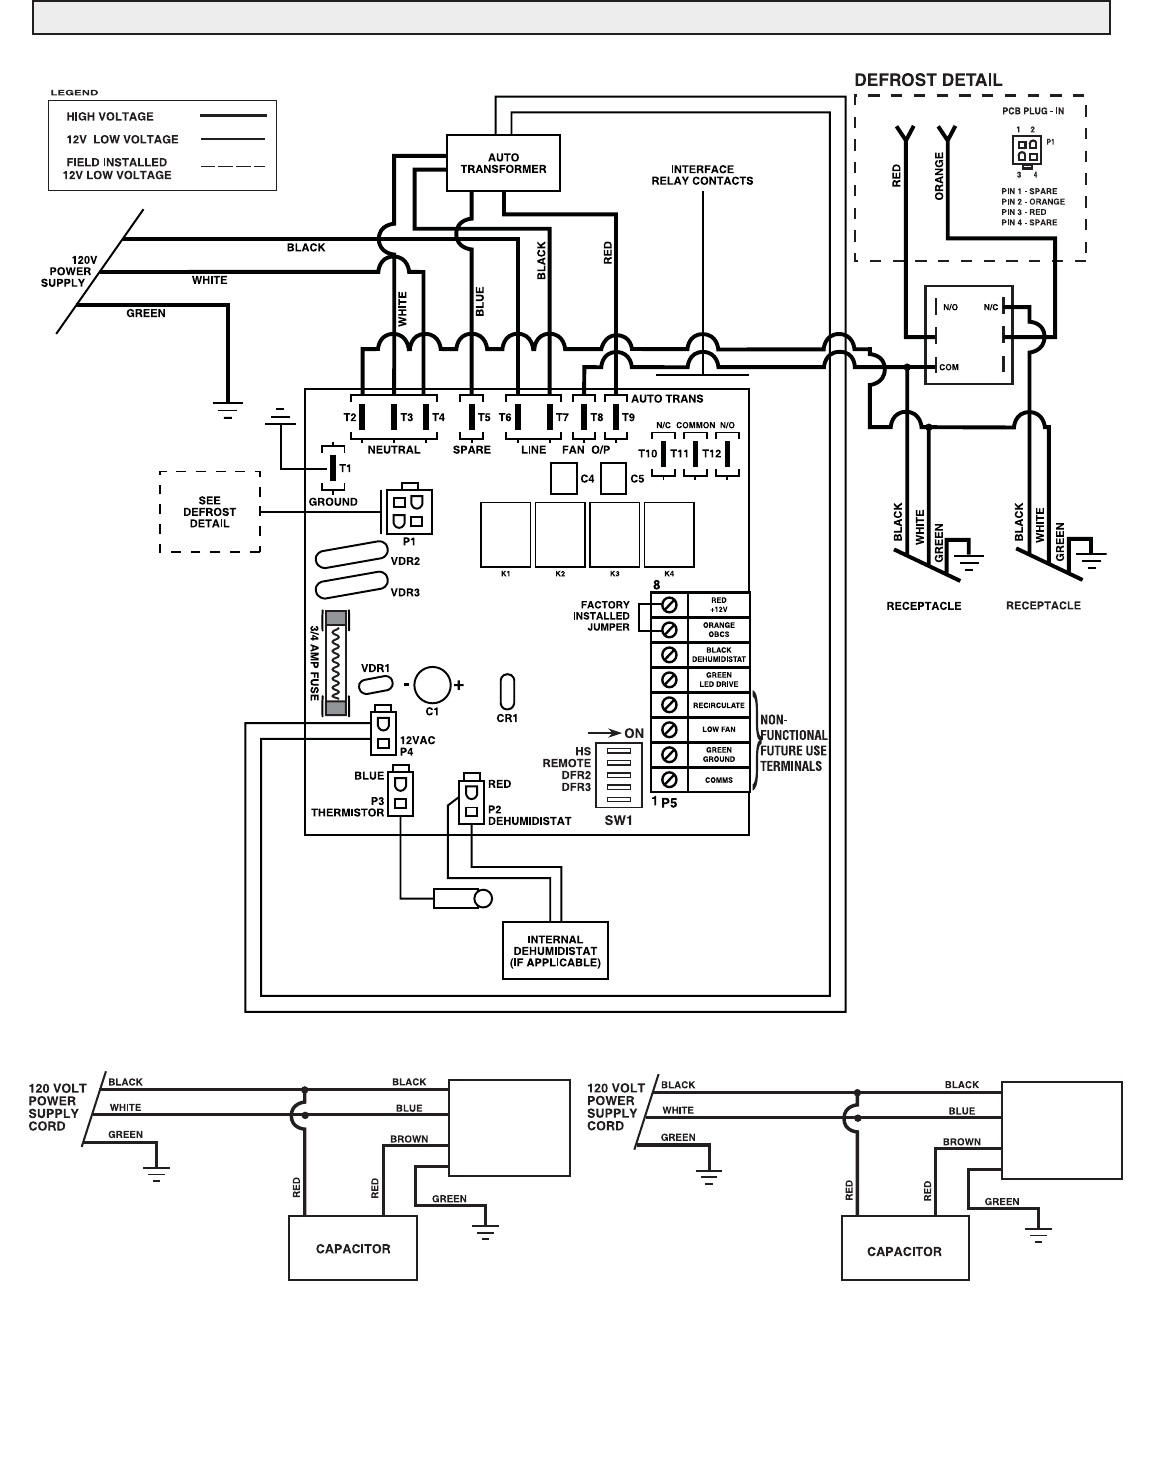 5444dbd9 703e a284 b511 466ee8cd2b78 bg15 page 21 of lifebreath ventilation hood rnc120f user guide lifebreath hrv wiring diagram at gsmportal.co